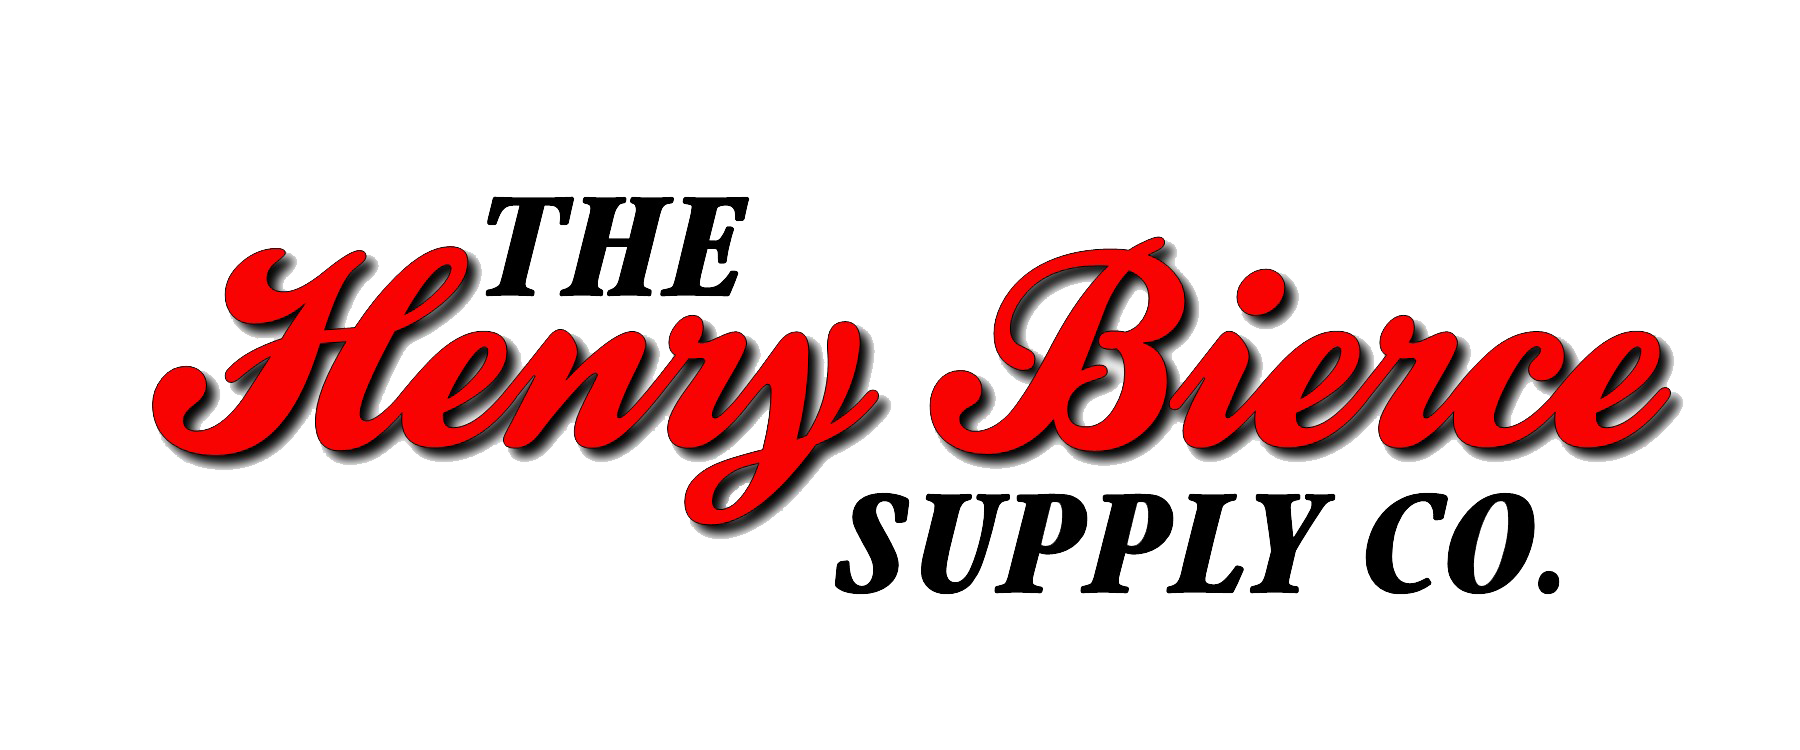 BIERCE SUPPLY